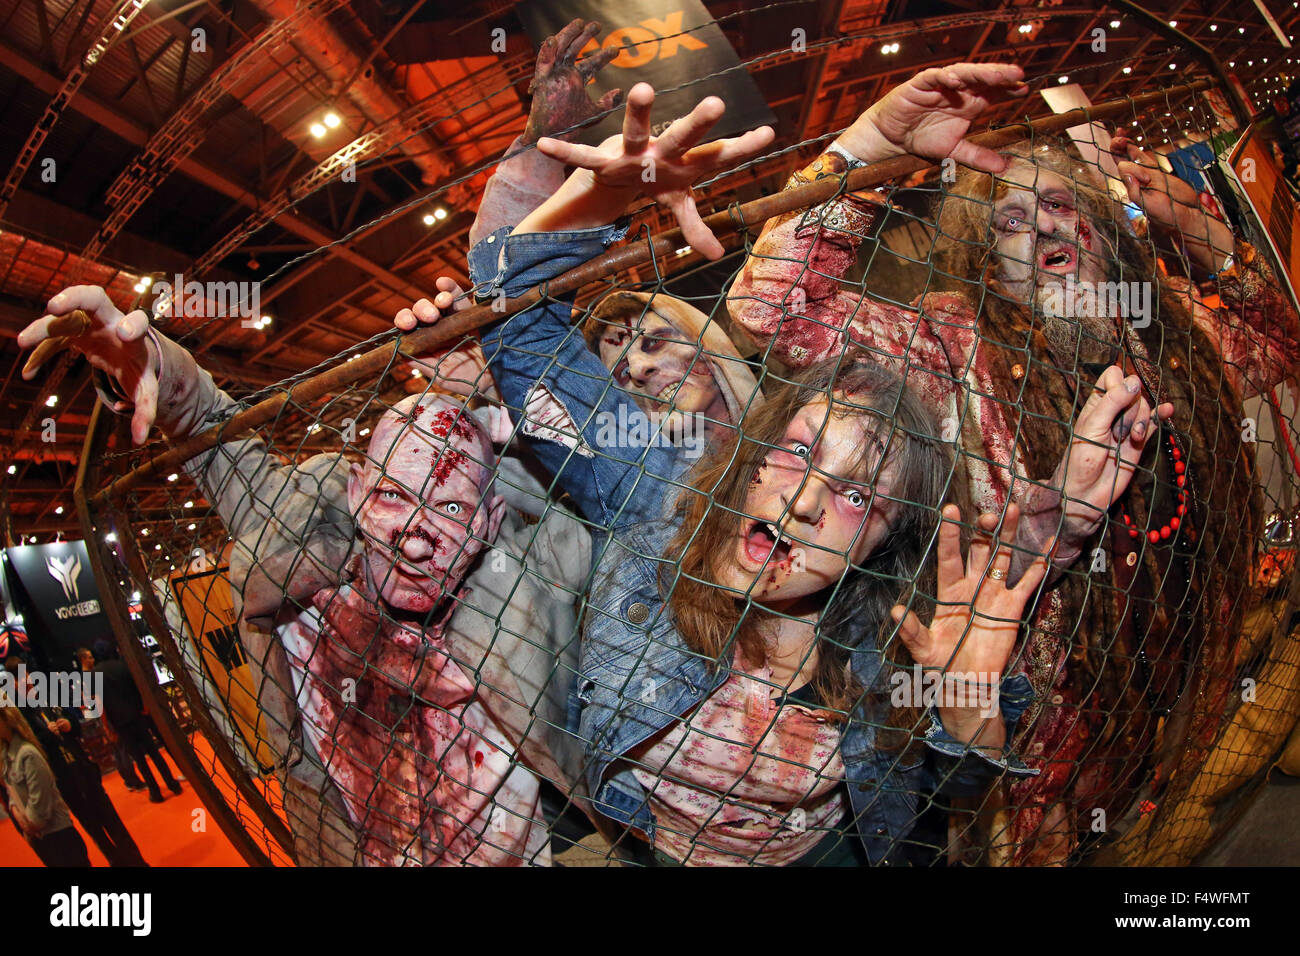 The Walking Dead Show Stock Photos & The Walking Dead Show Stock ...